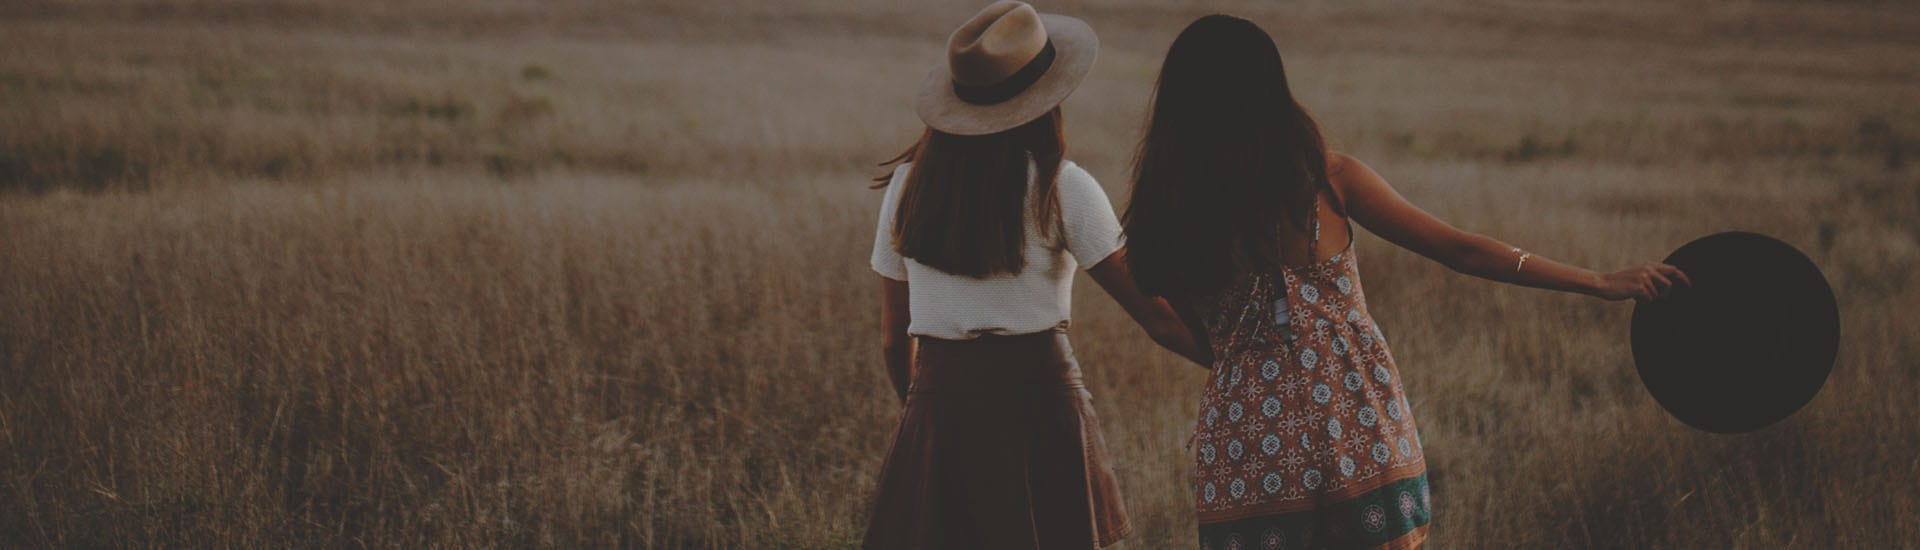 The Power of Godly Friendships